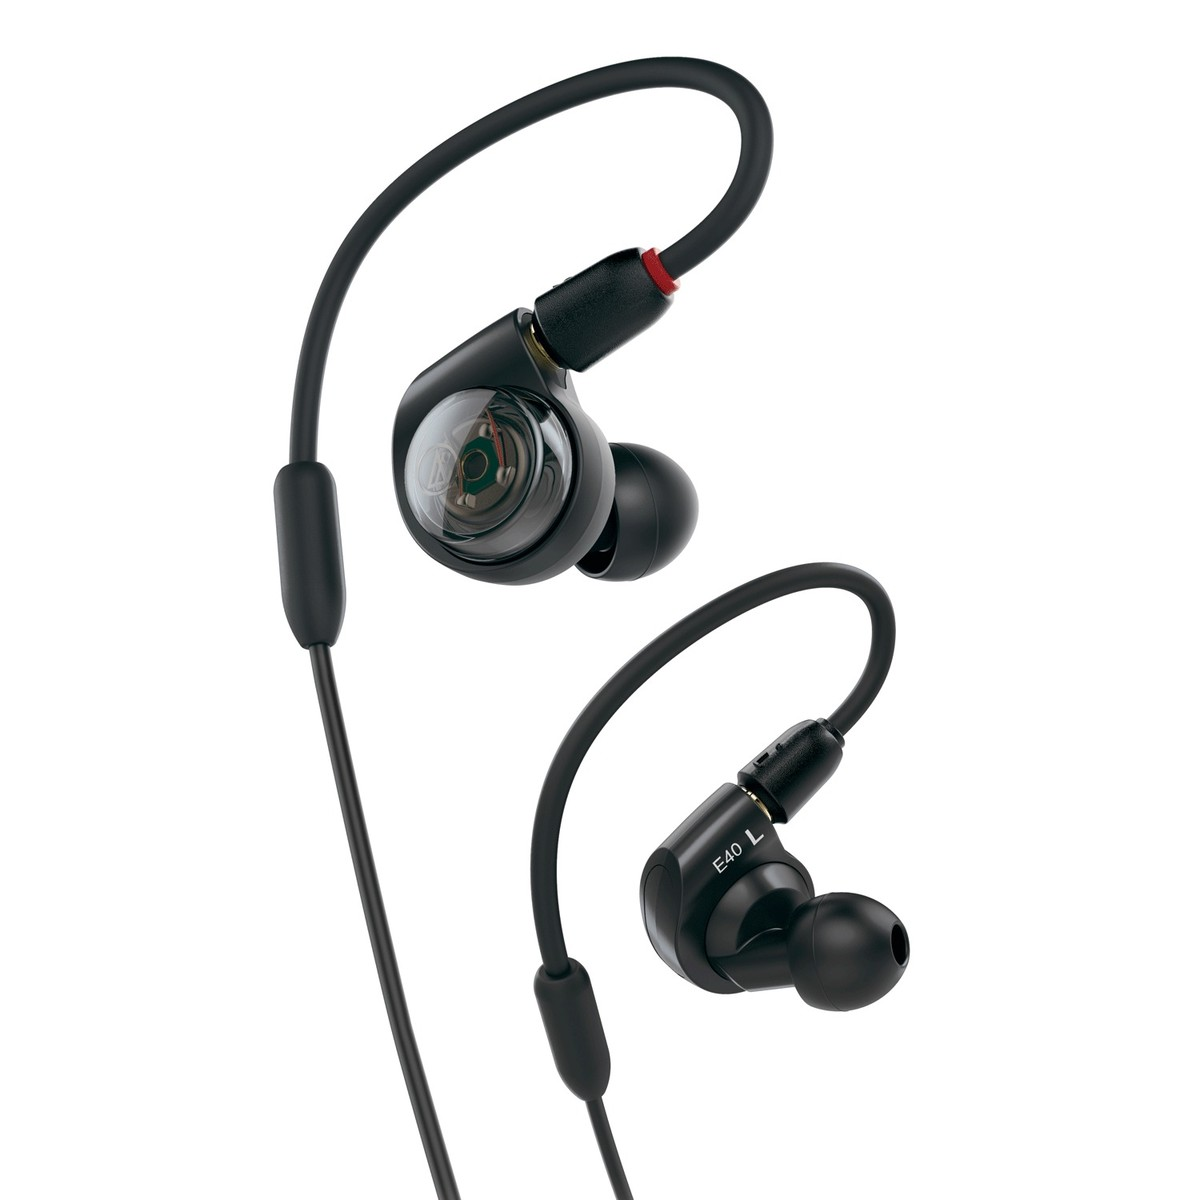 audio technica ath e40 professional in ear monitor earphones at. Black Bedroom Furniture Sets. Home Design Ideas